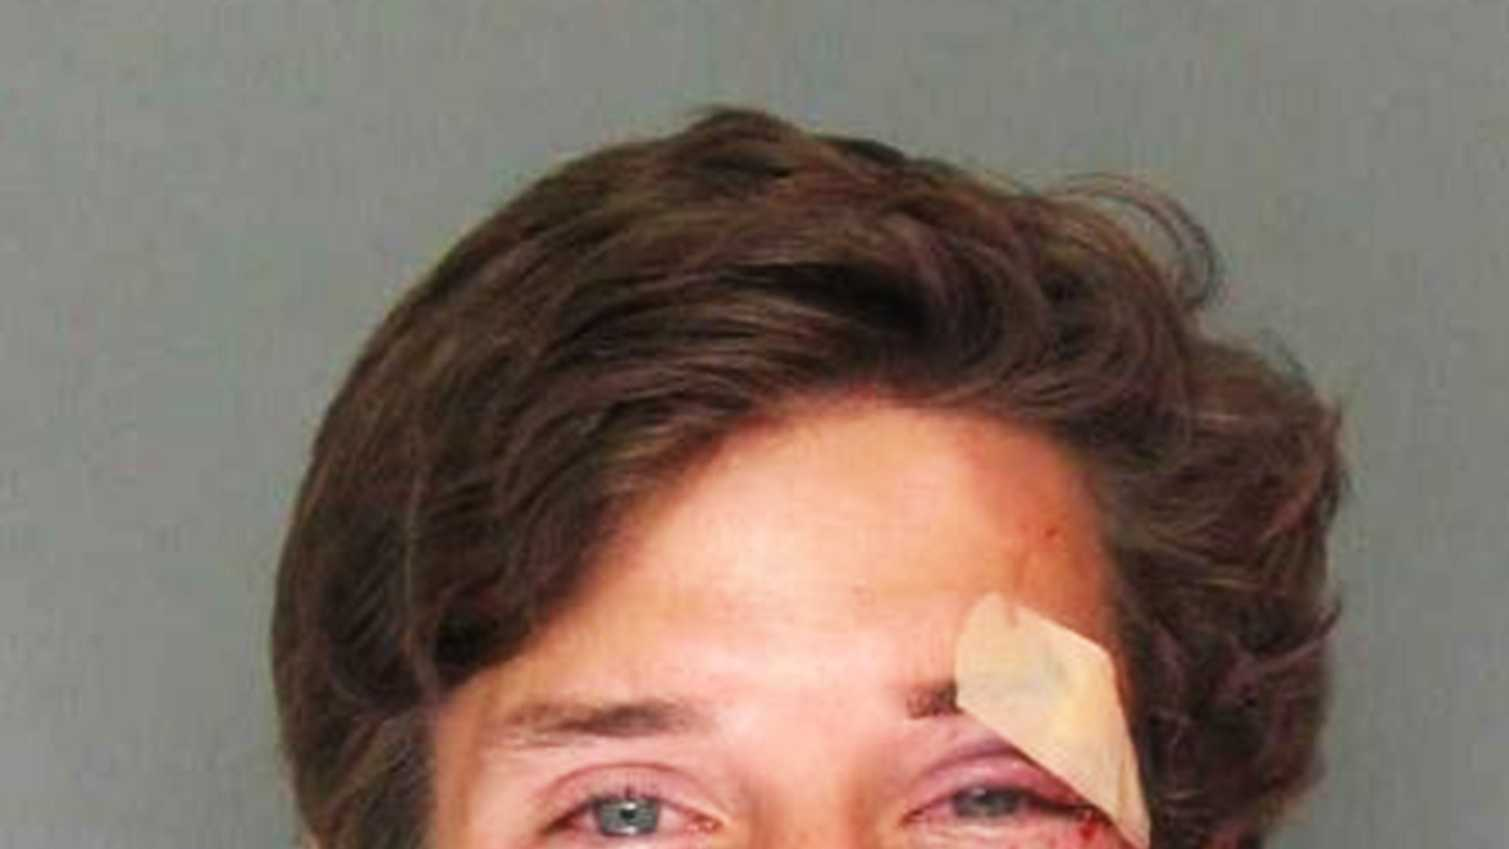 Despite suffering from facial injuries and facing felony charges, Kevin Smith is smiling in his jail mug shot.